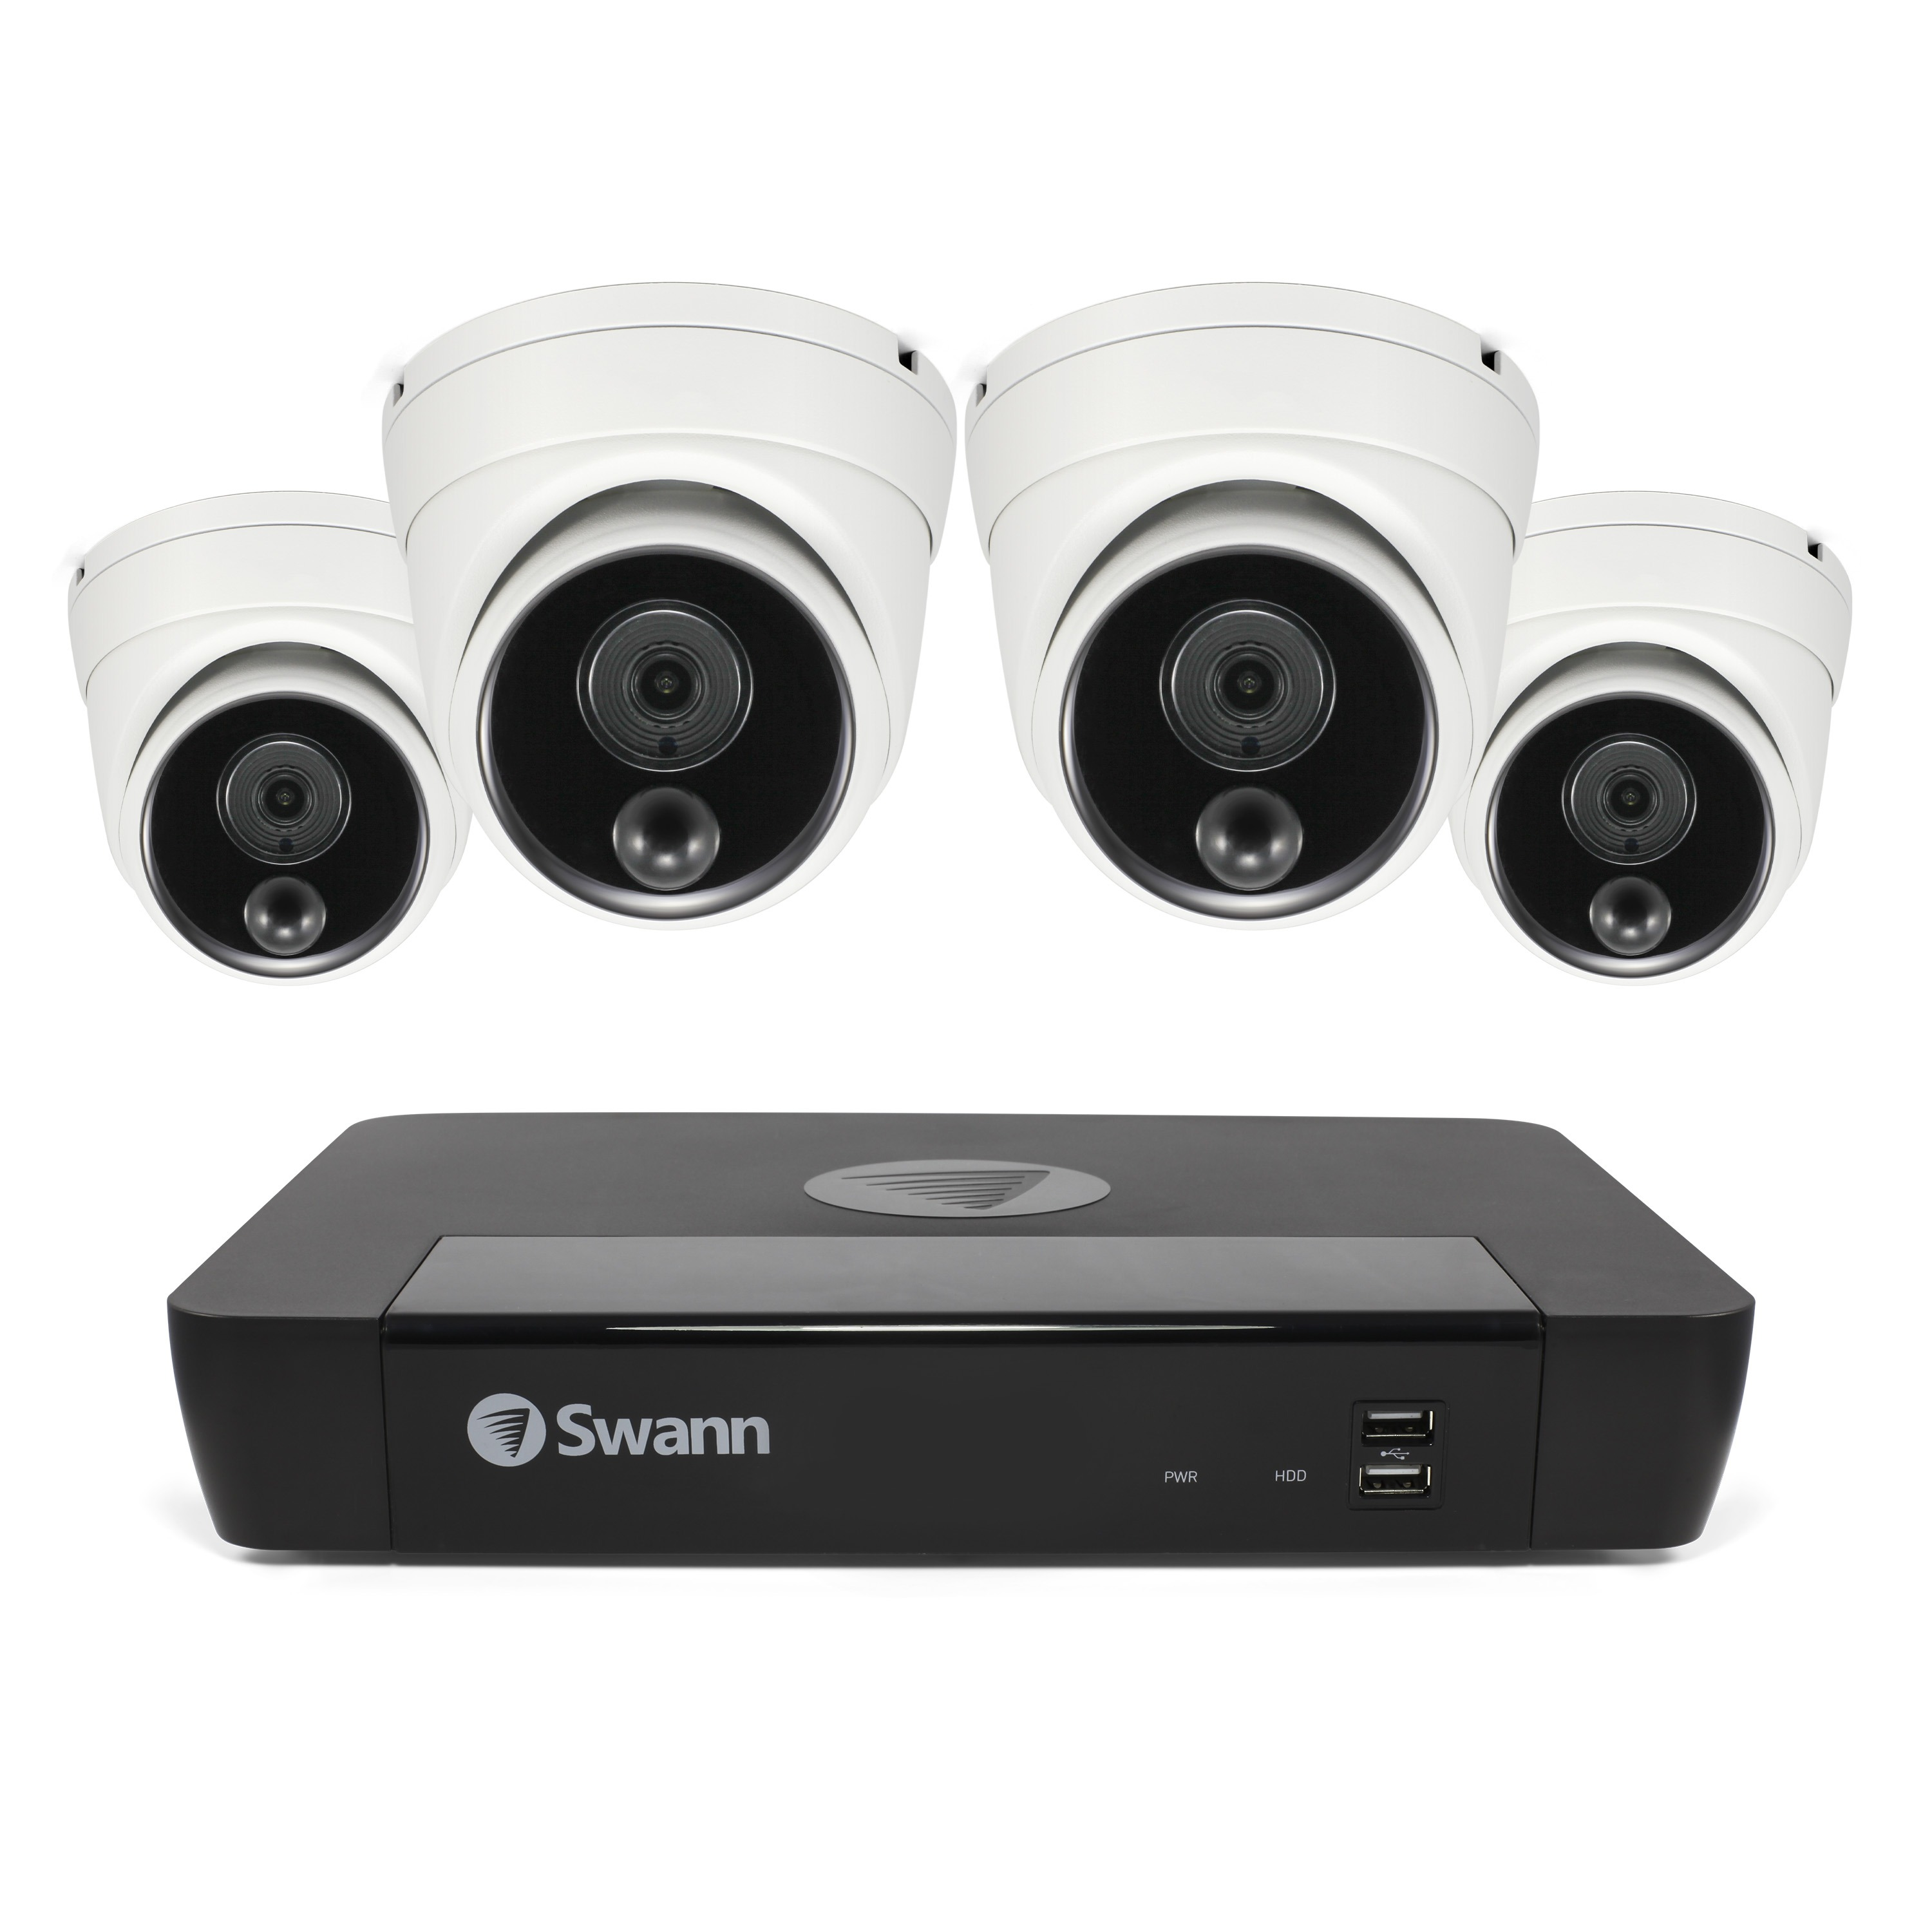 Swann SONVK-886808D Dome Security camera System